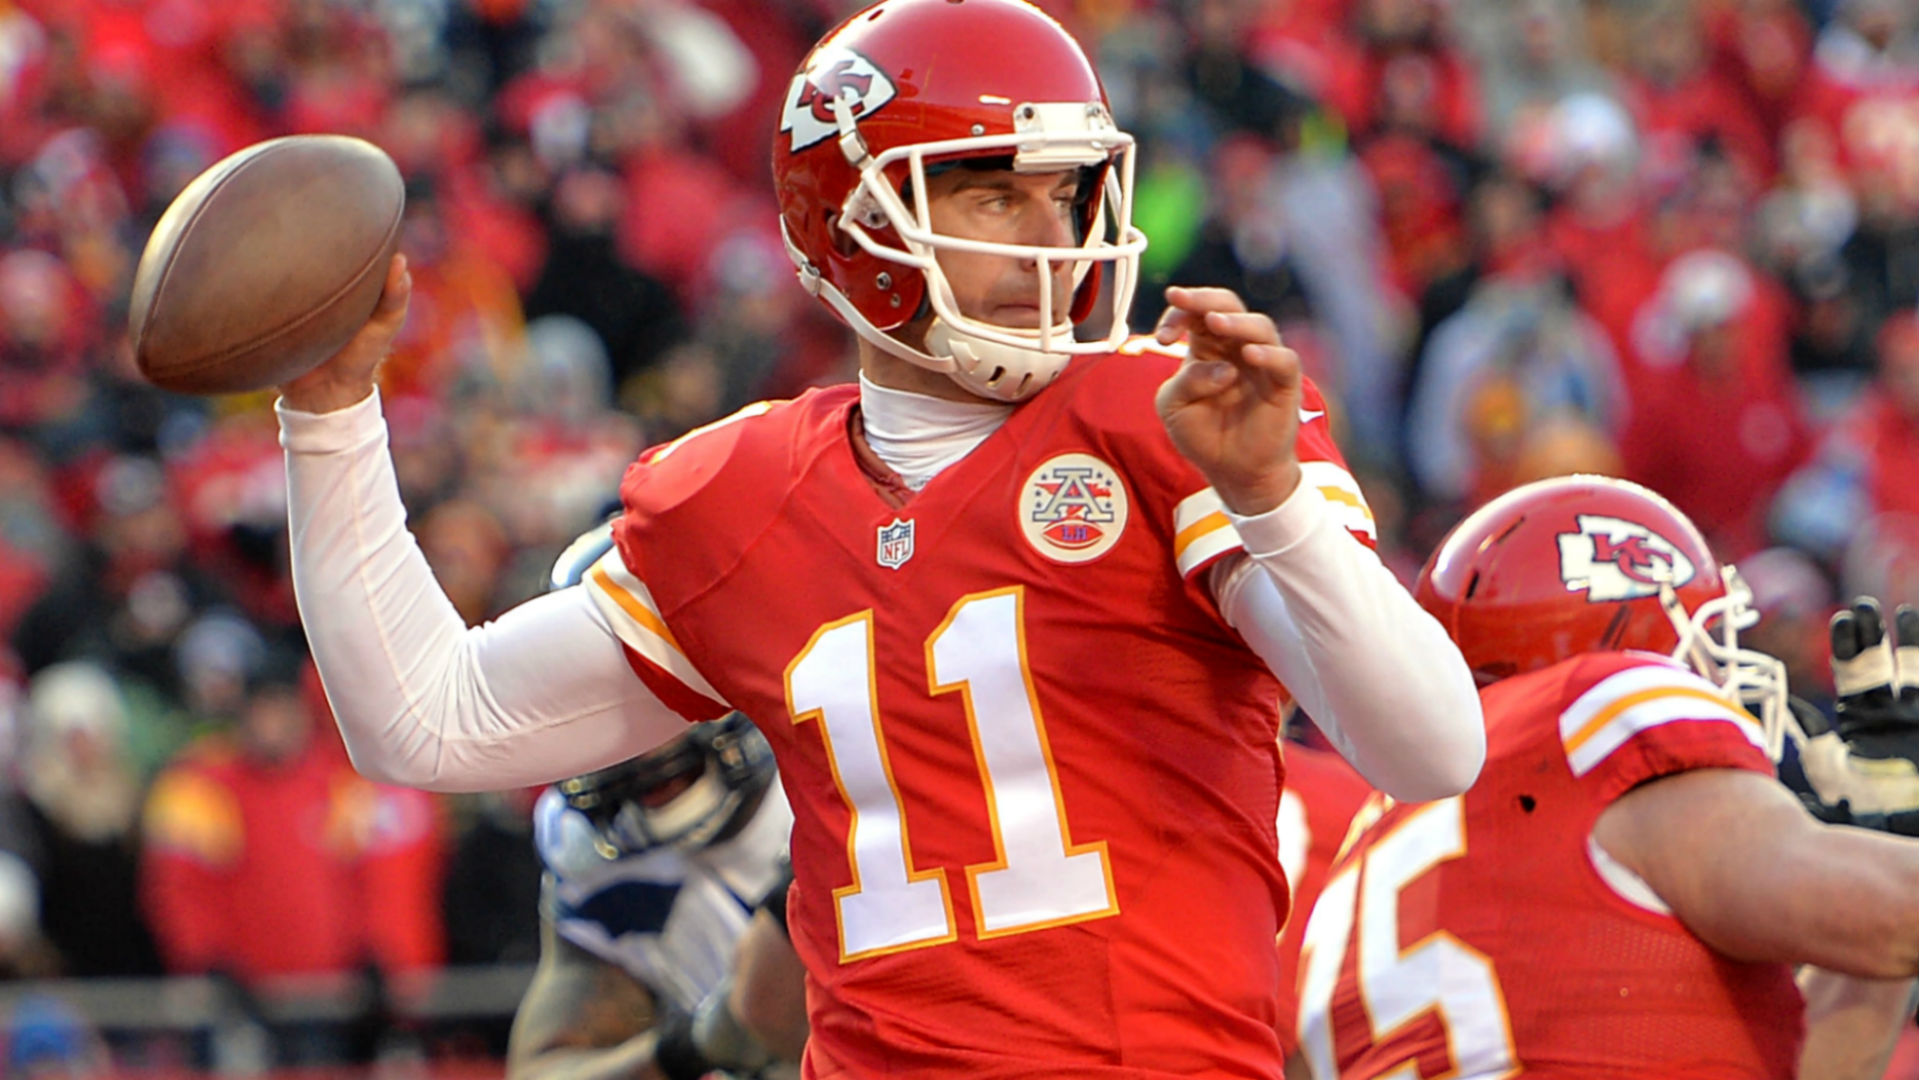 Chiefs vs. Raiders betting preview and pick – K.C. in bad spot against worse team